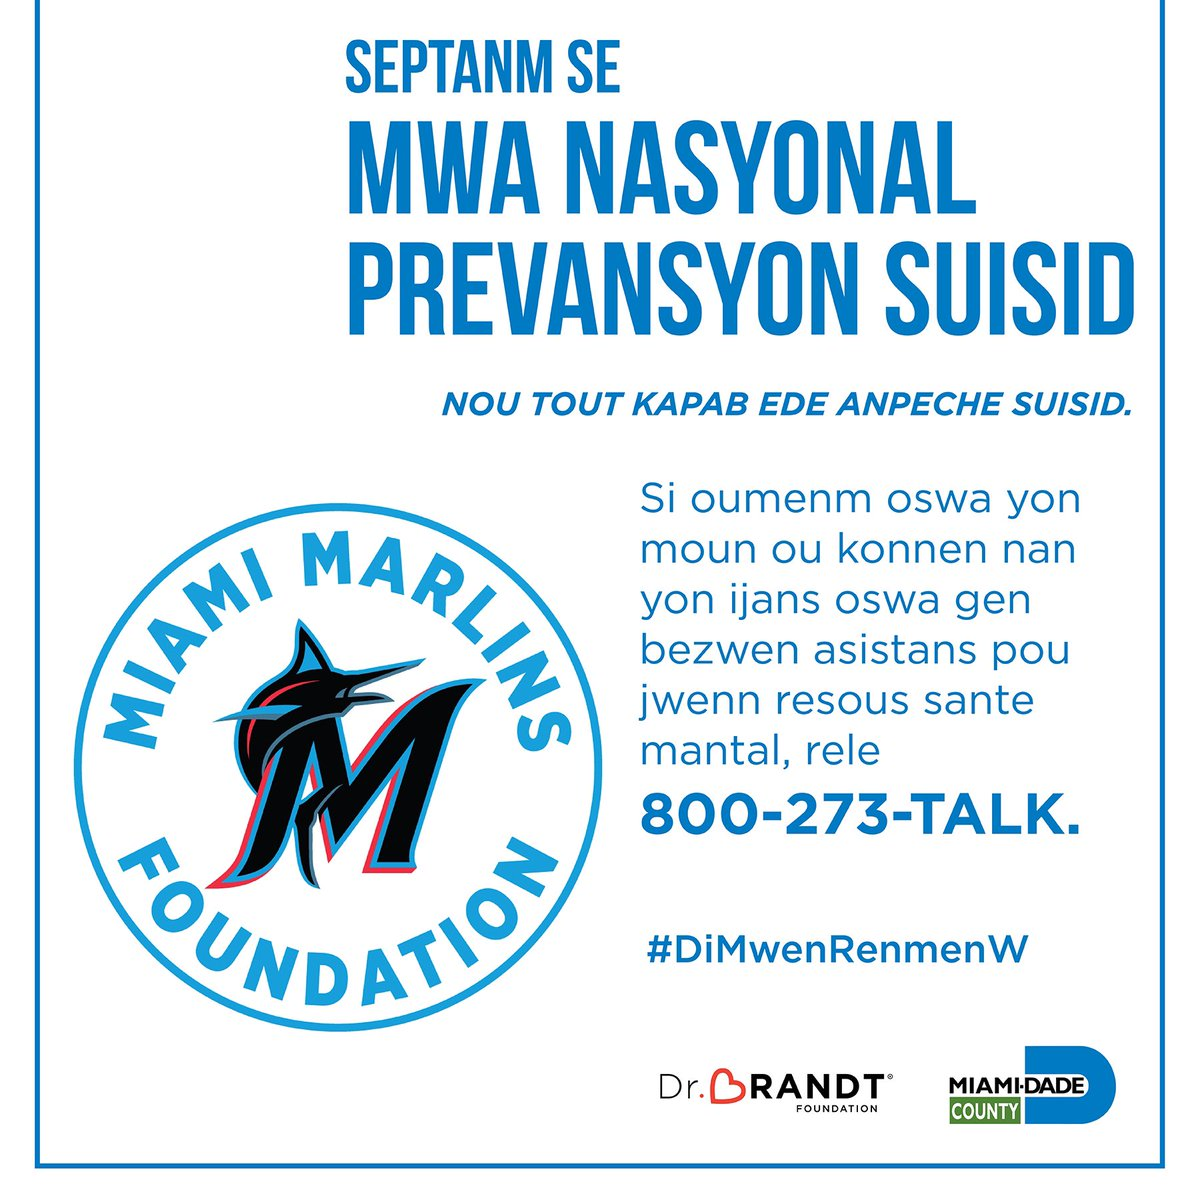 September is National Suicide Prevention Month and we are partnering with the @DrBrandtFNDN, @MiamiDadeCounty and @mayordlc in coming together to bring awareness to the resources and support available. #sayiloveyou #suicideprevention #mentalhealthmatters